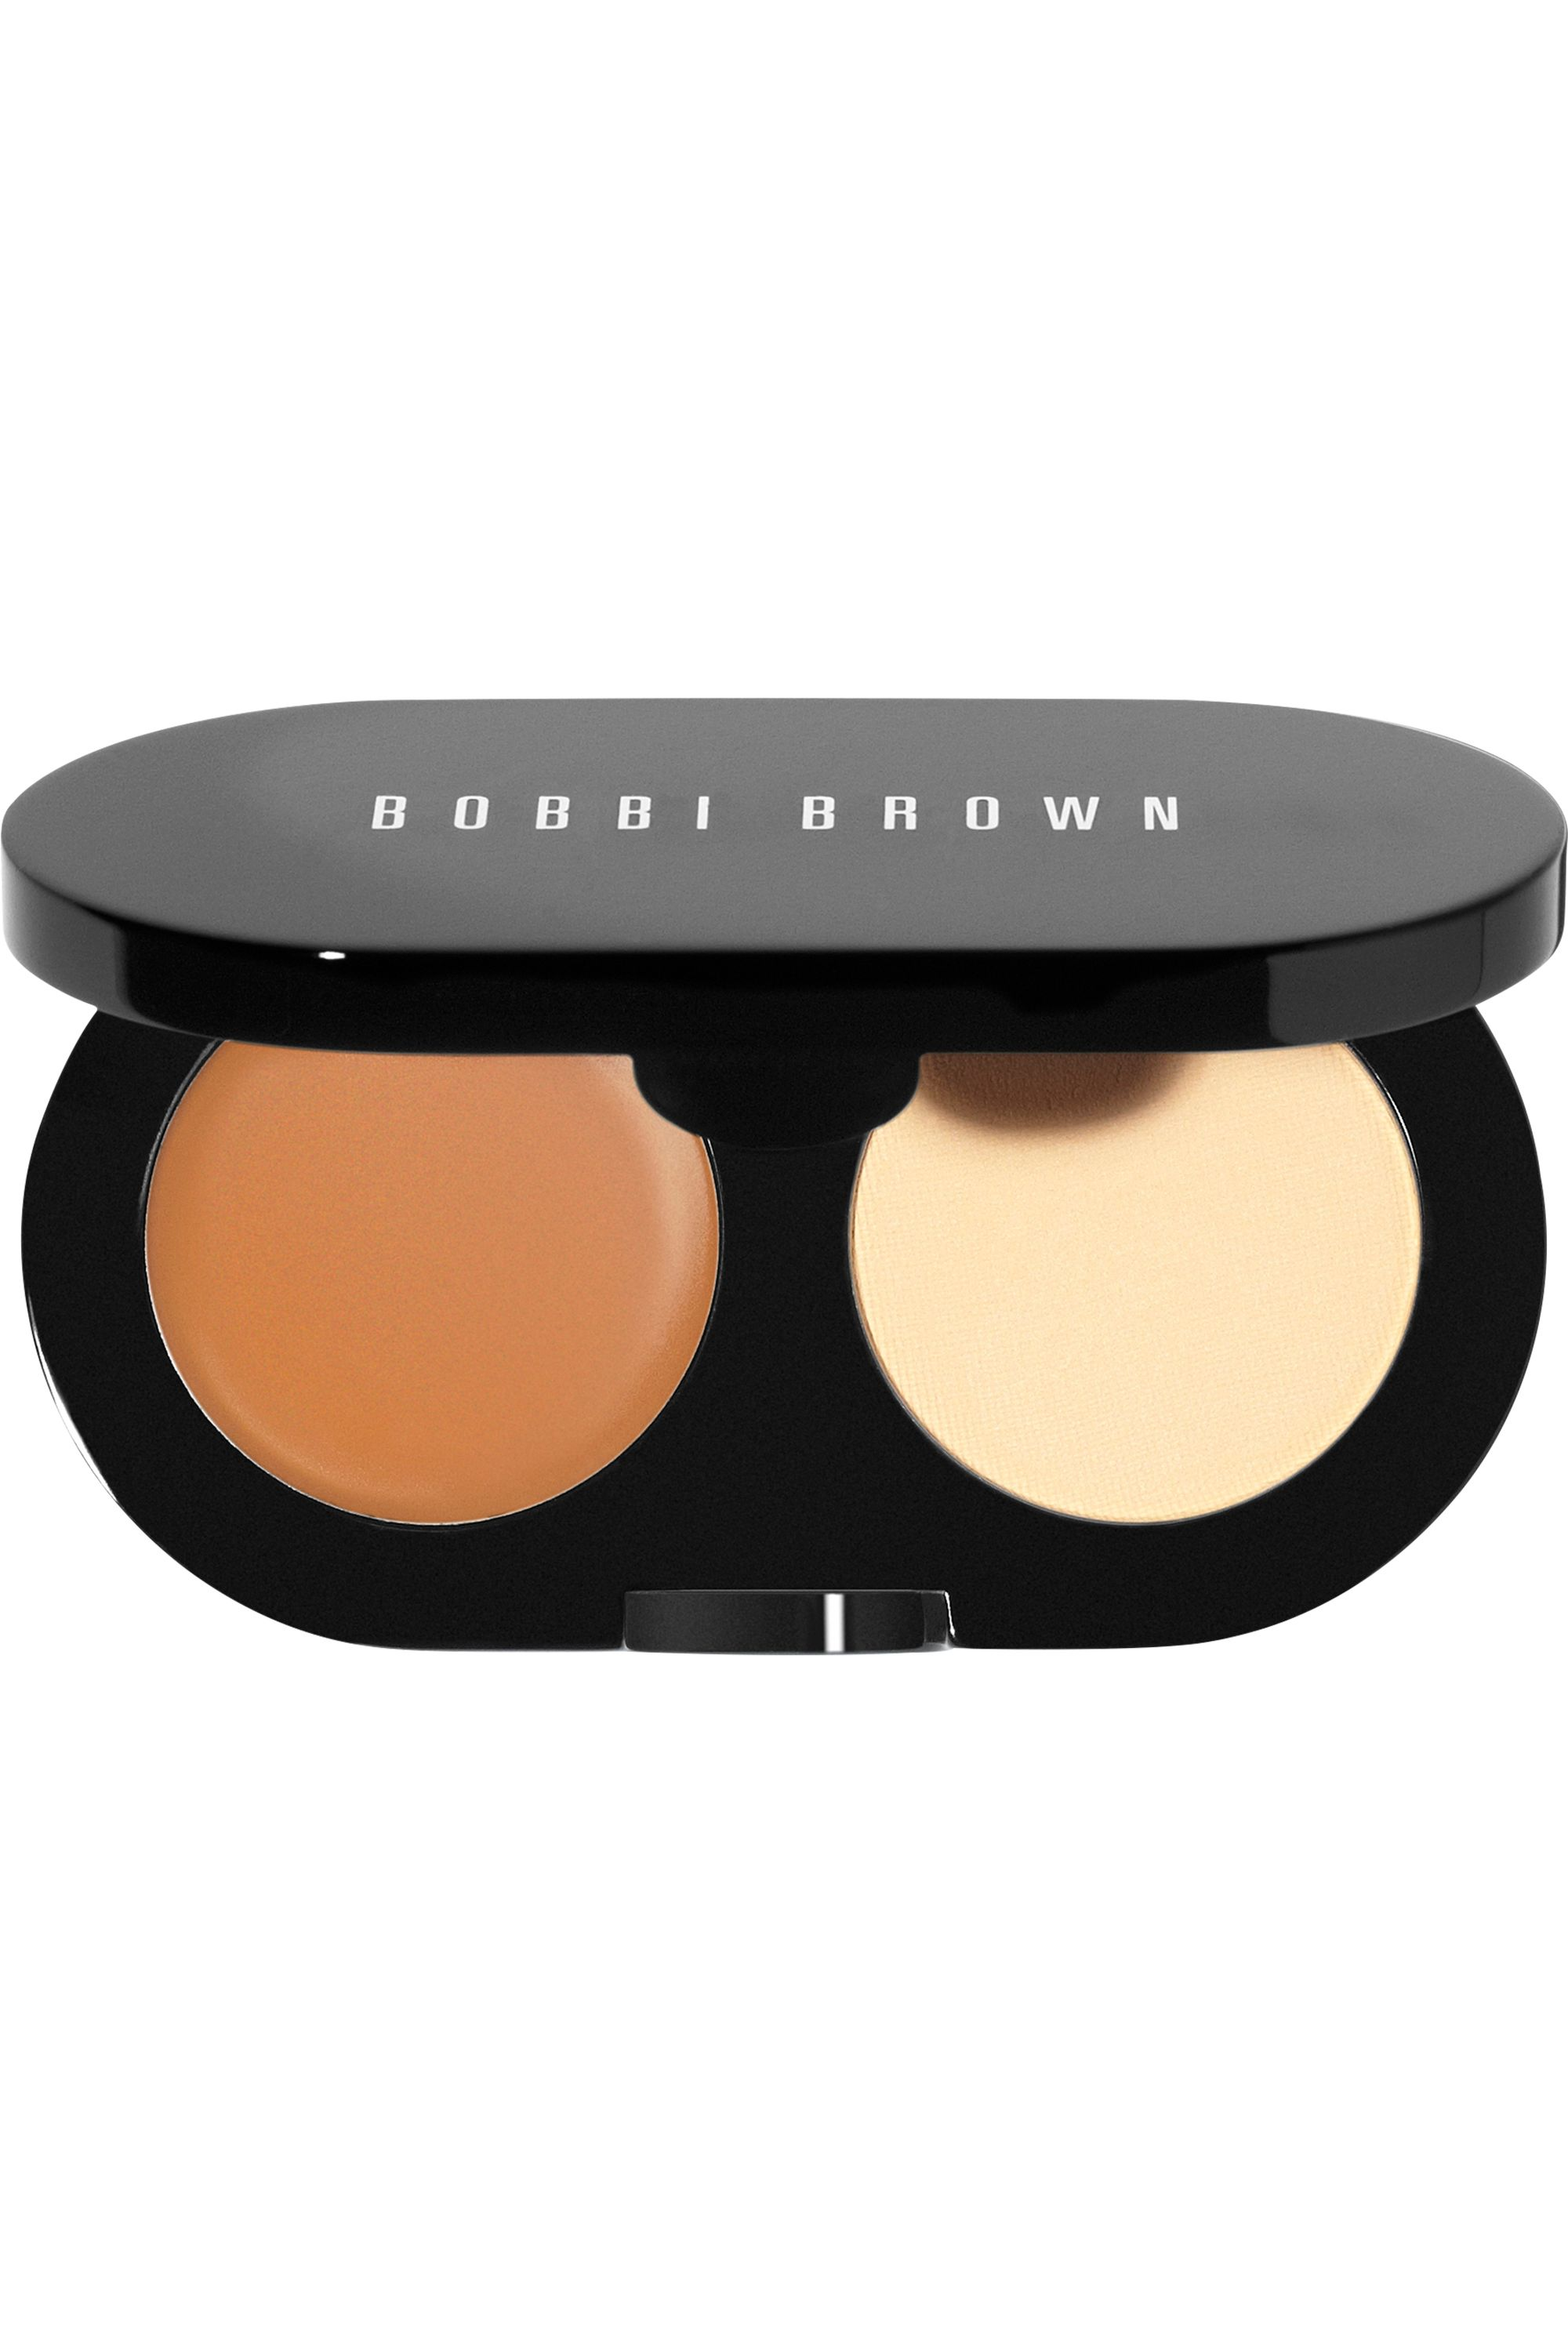 Blissim : Bobbi Brown - Kit anti-cernes Creamy Concealer Kit - Warm Honey